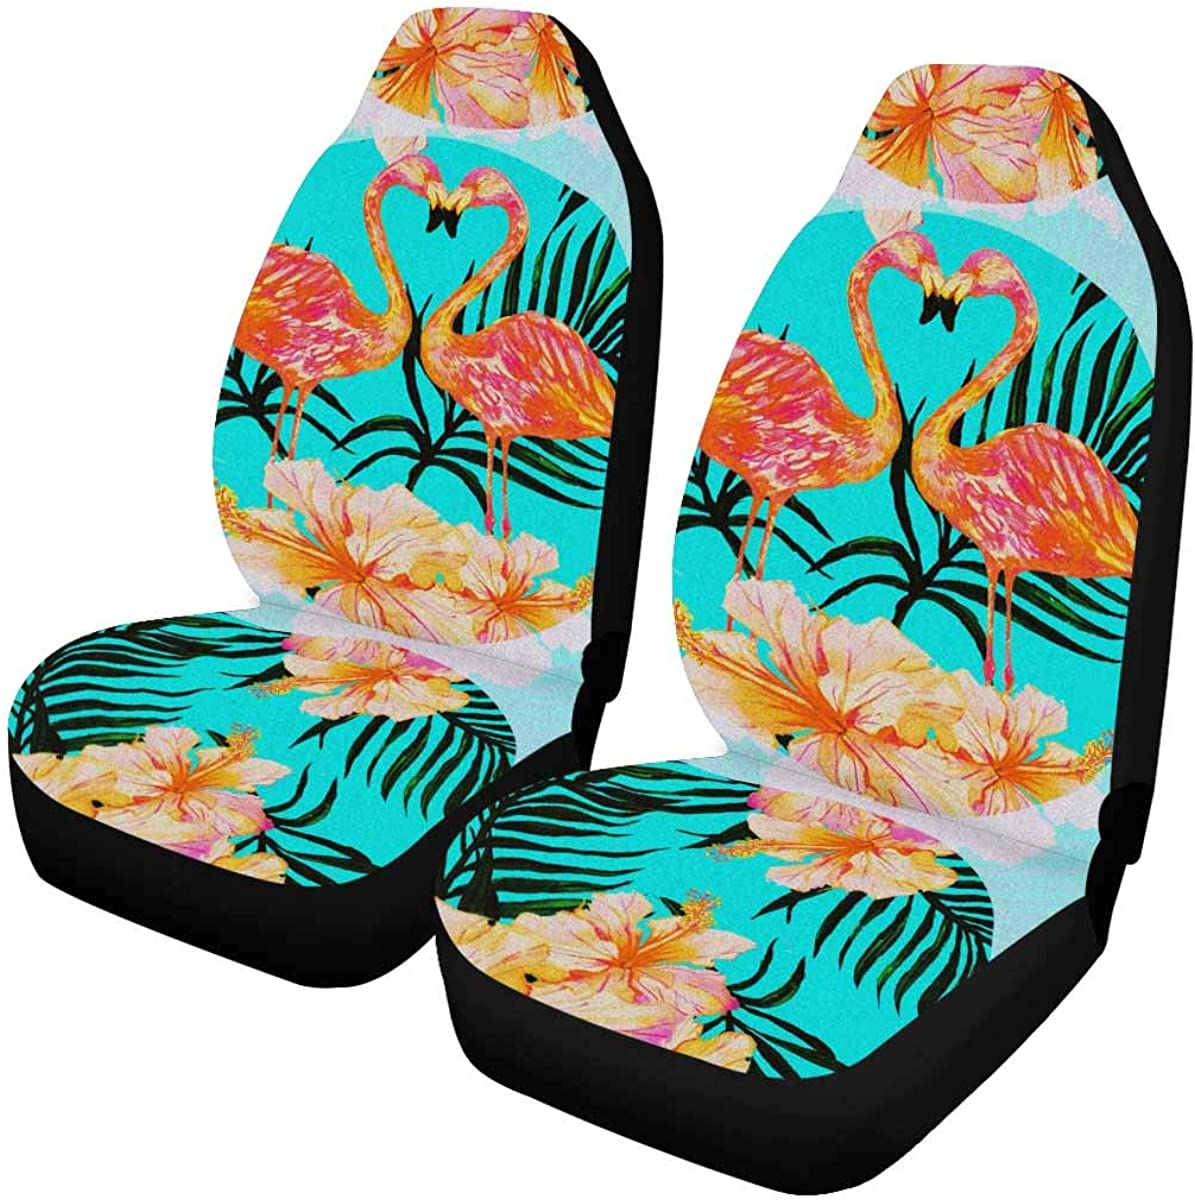 INTERESTPRINT Auto Seat Covers Full Set of 2, Vehicle Seat Protector Car Mat Covers, Fit Most Vehicle, Cars, Sedan, Truck, SUV, Van